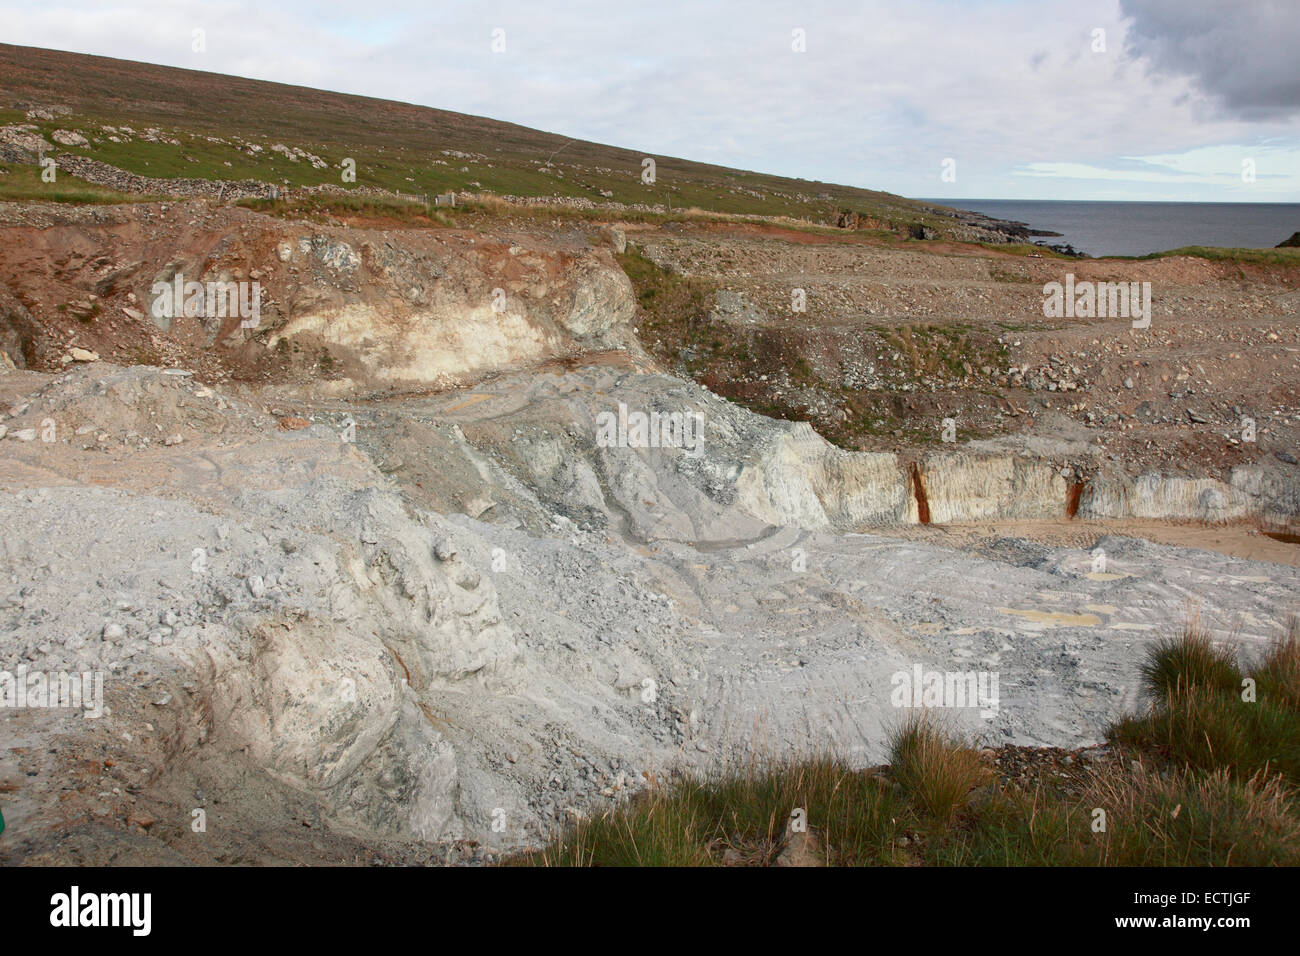 BritainÕs only working talc quarry at Clibberswick near Haroldswick, Unst, Shetland - Stock Image